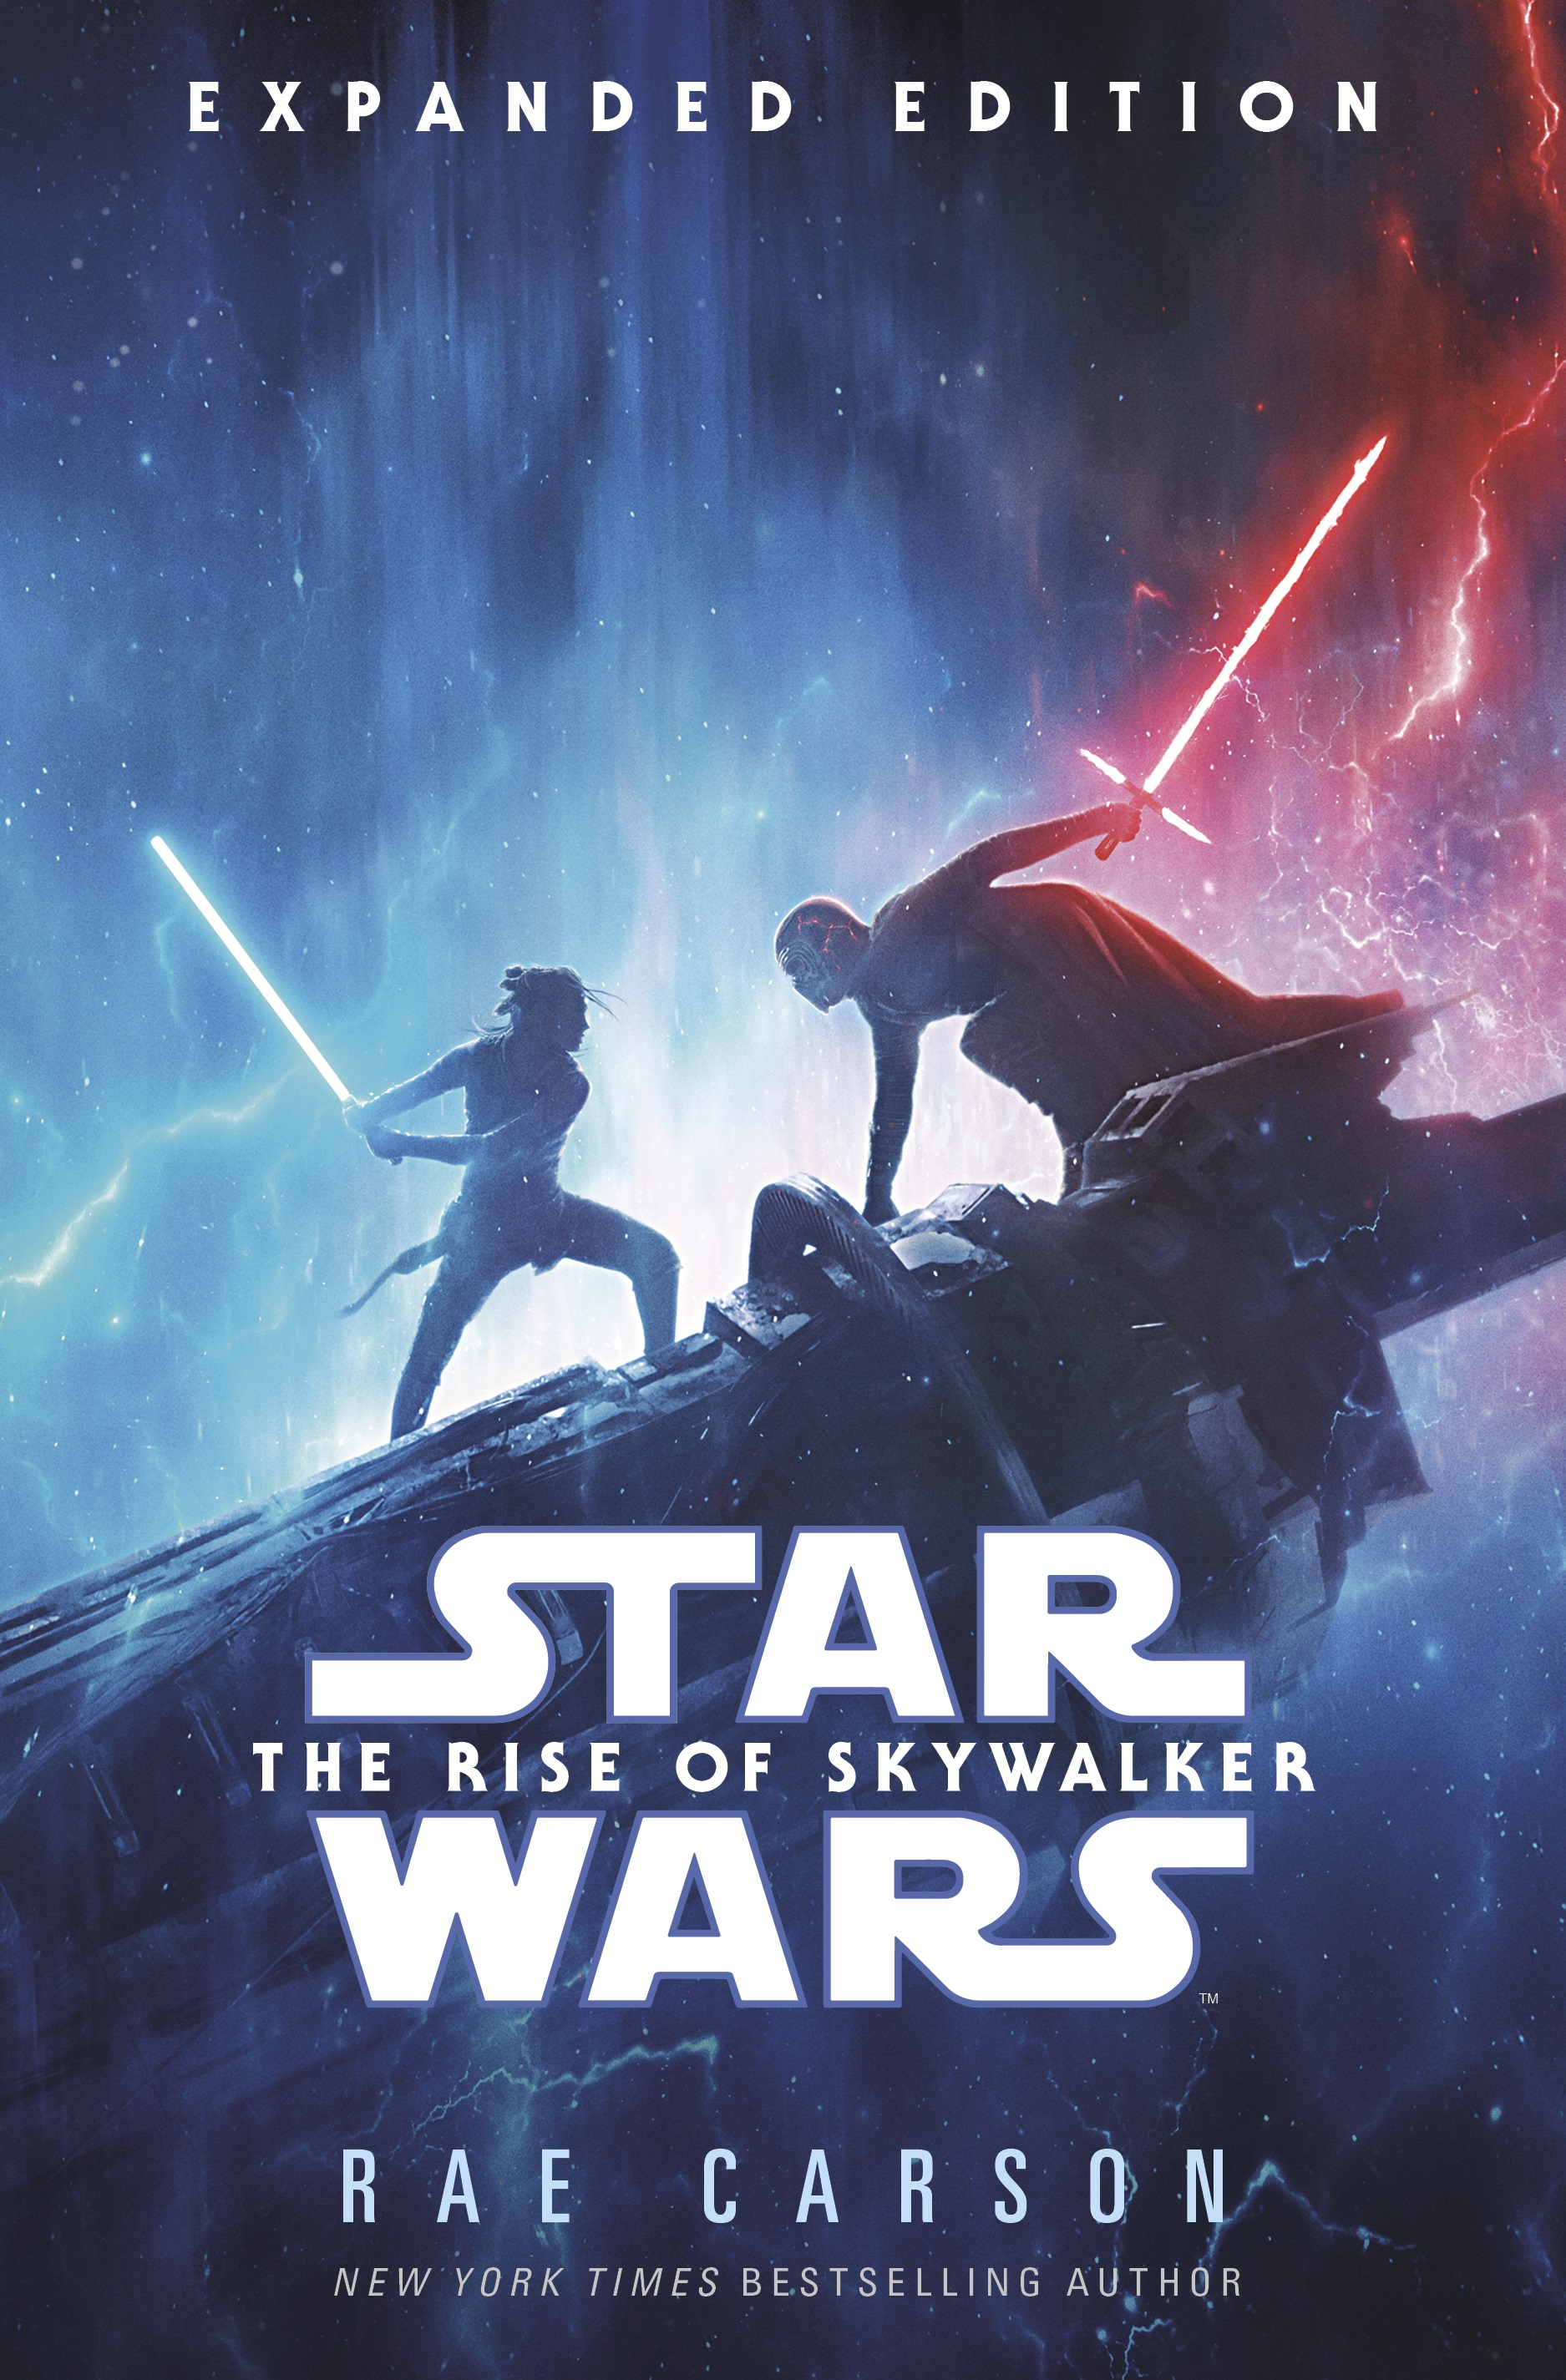 Star Wars The Rise Of Skywalker Expanded Edition Wookieepedia Fandom High quality womp rat gifts and merchandise. star wars the rise of skywalker